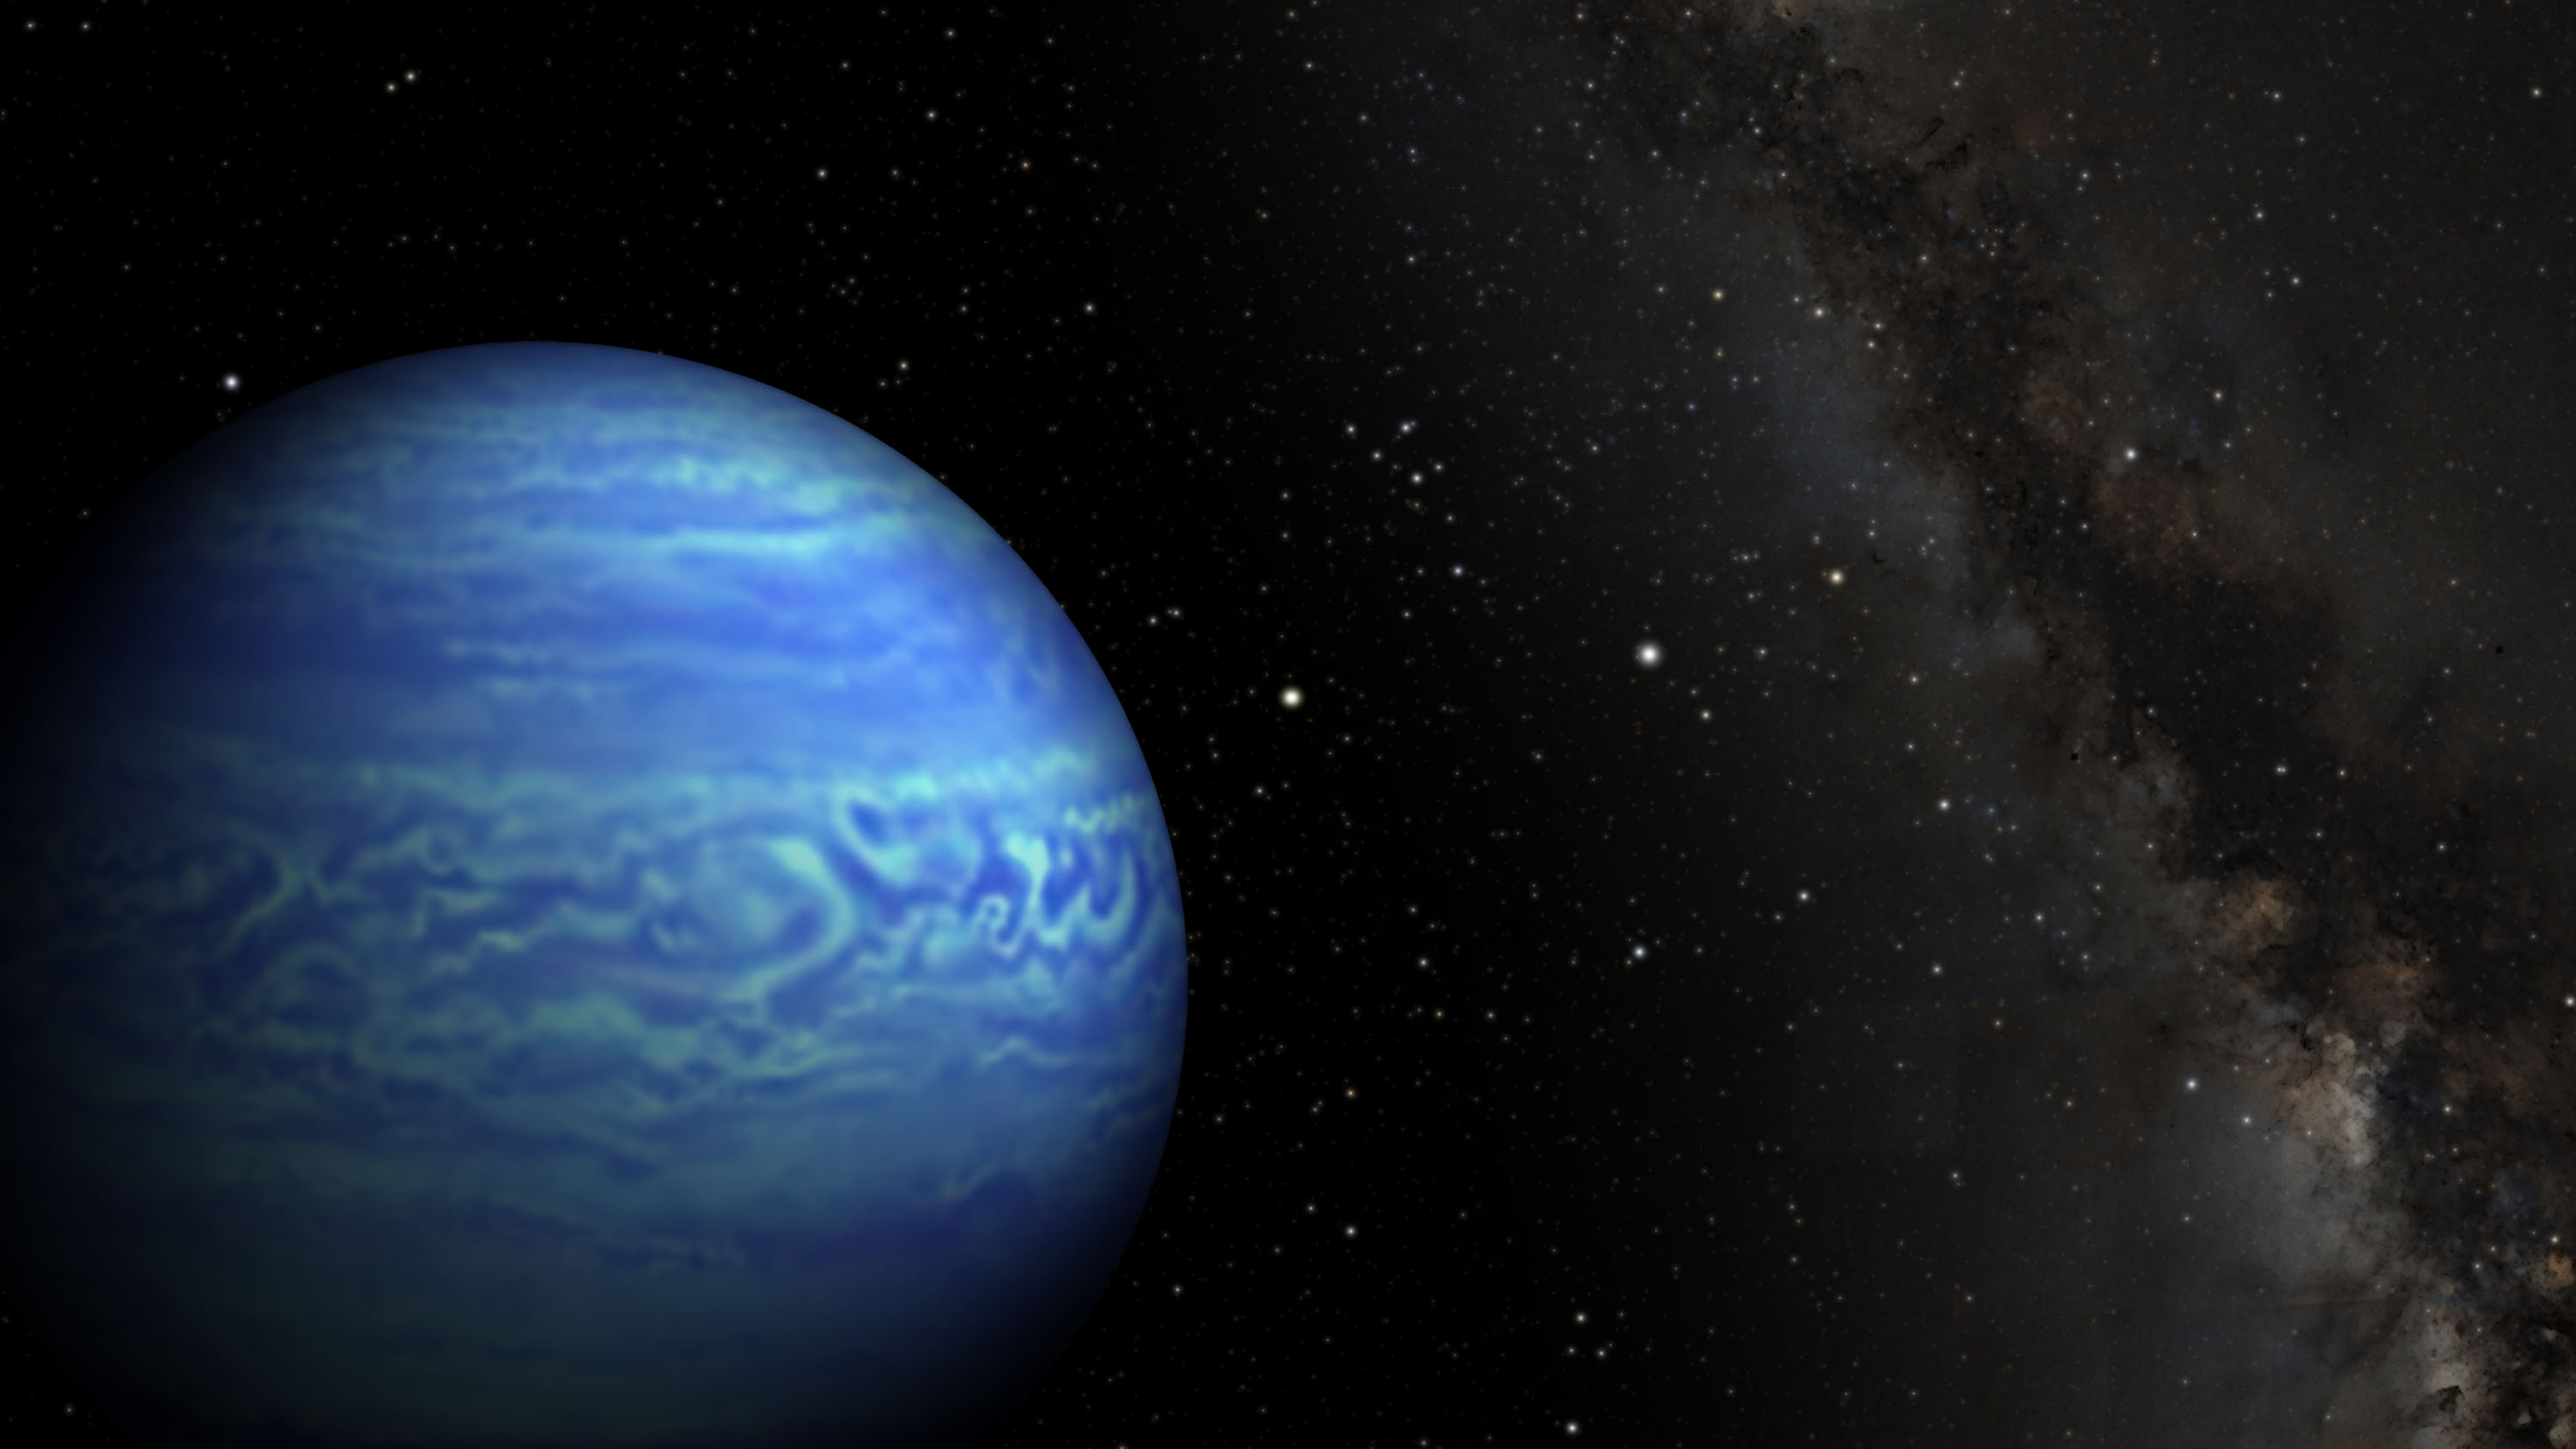 The coldest known brown dwarf